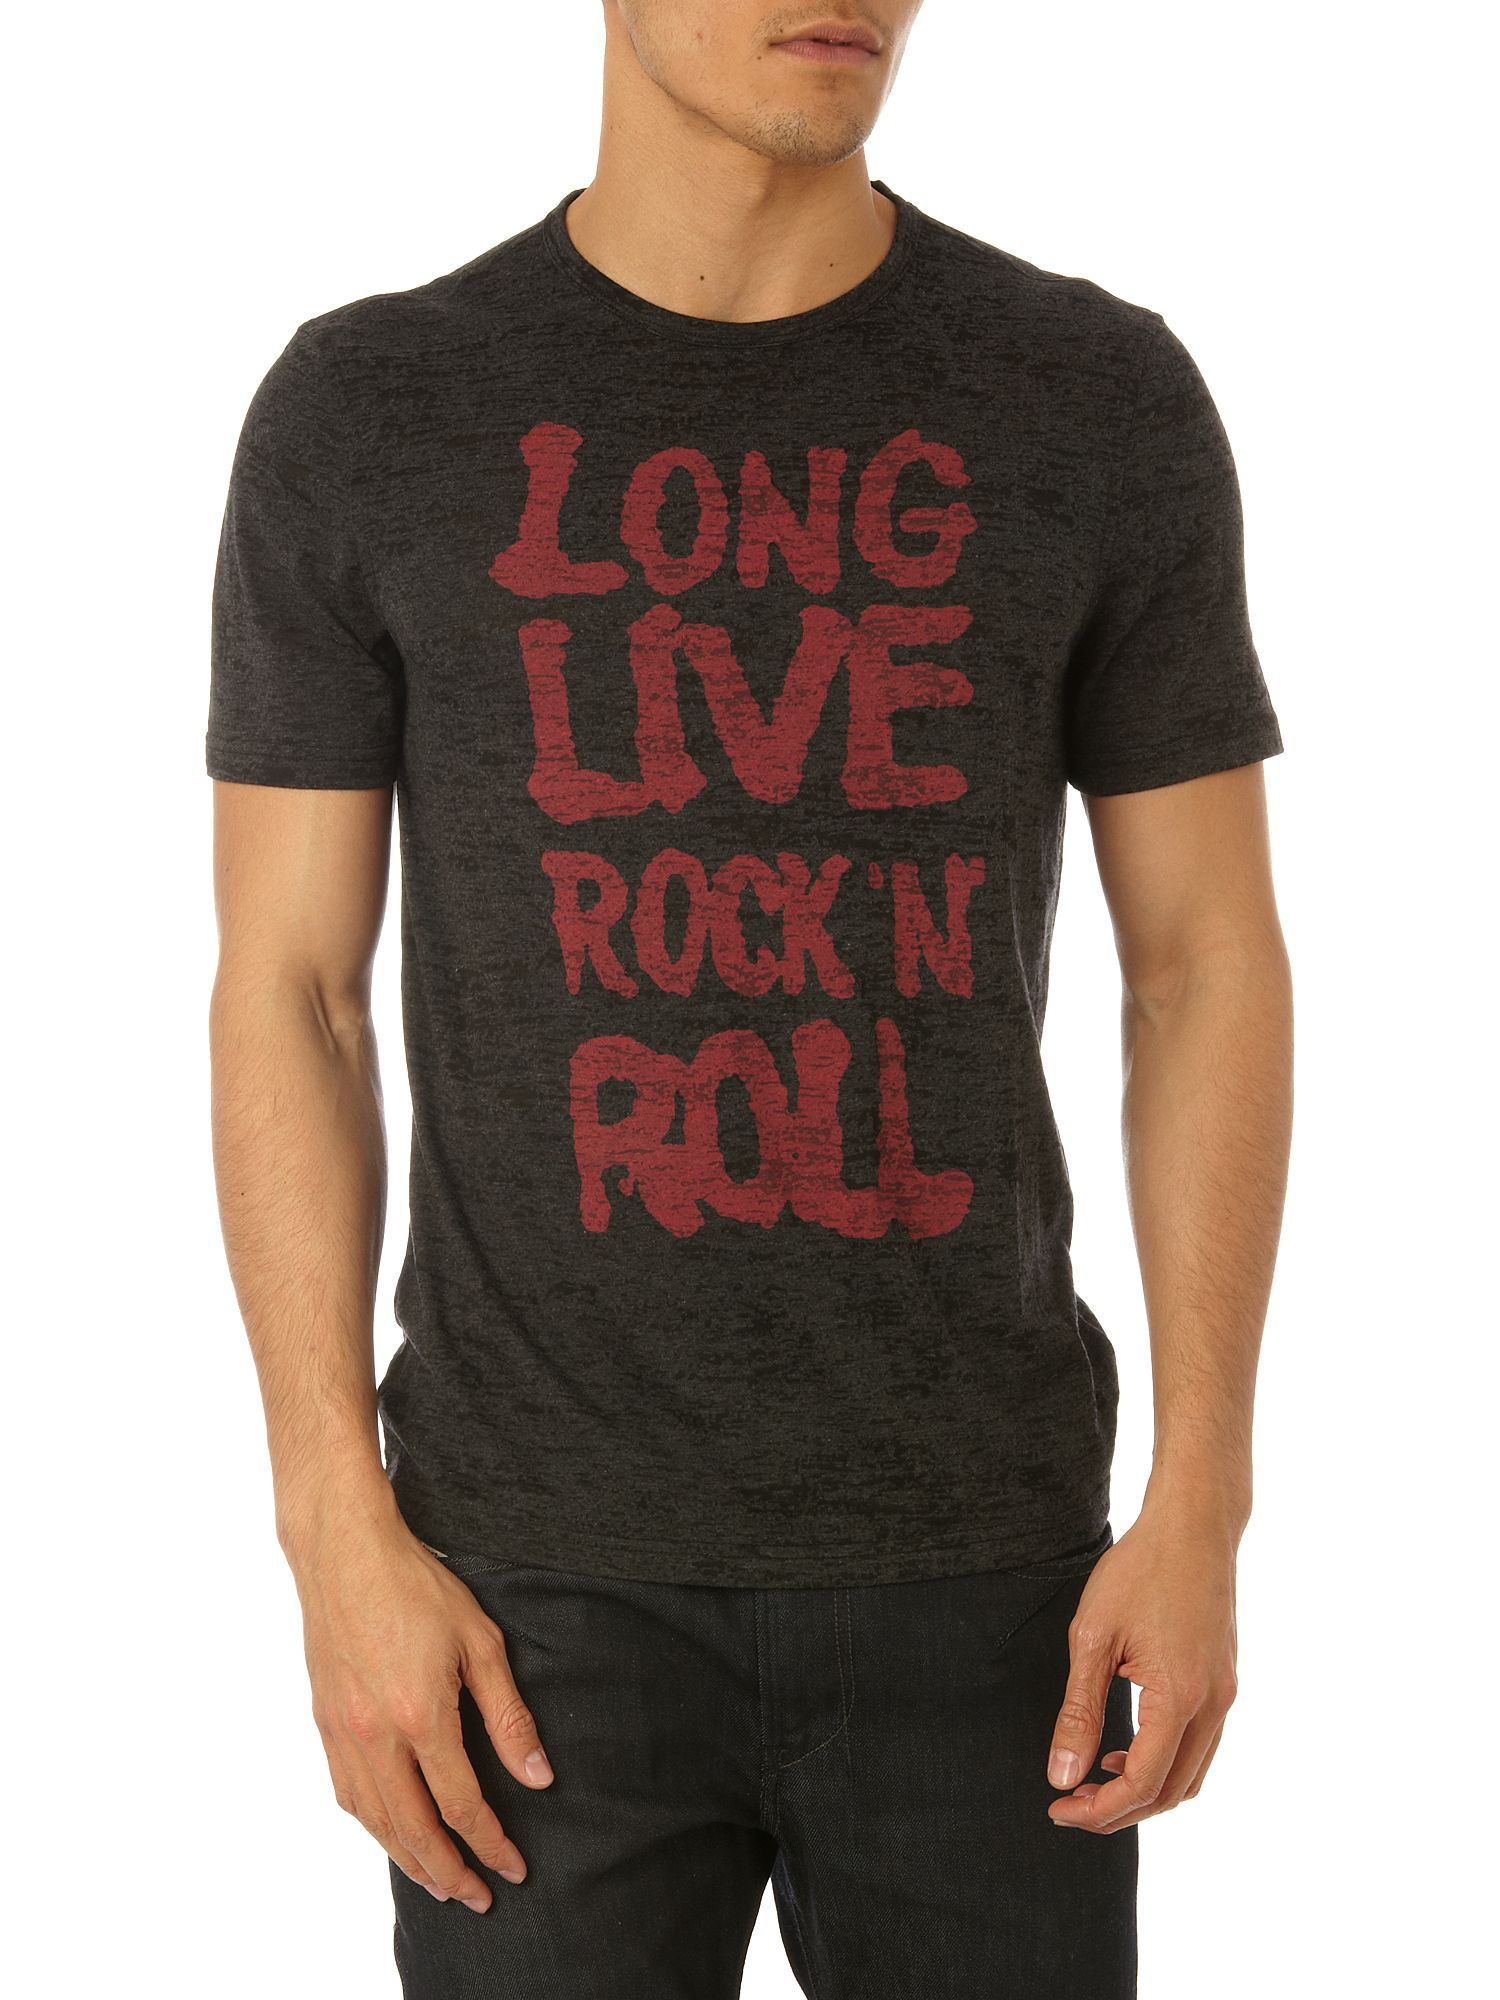 John Varvatos Long live rock graphic tee Grey product image